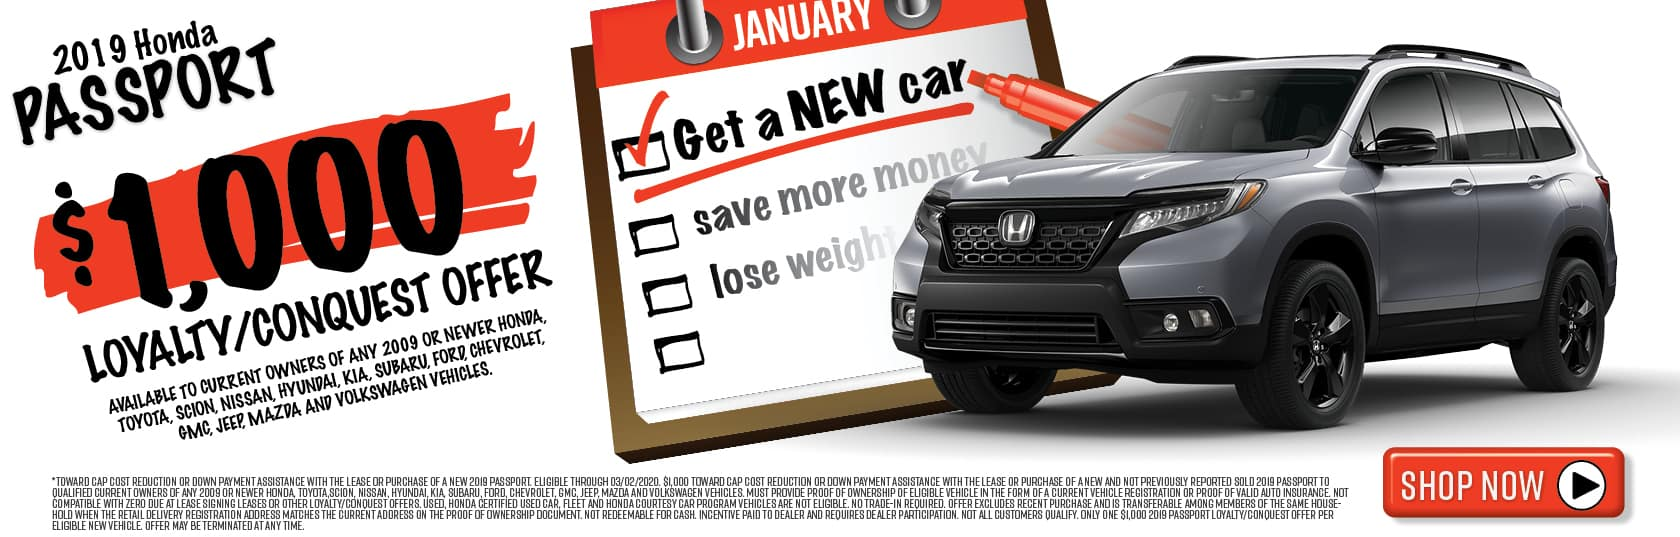 Owners Honda Com >> New And Used Vehicles Excellent Auto Service In Midlothian Va